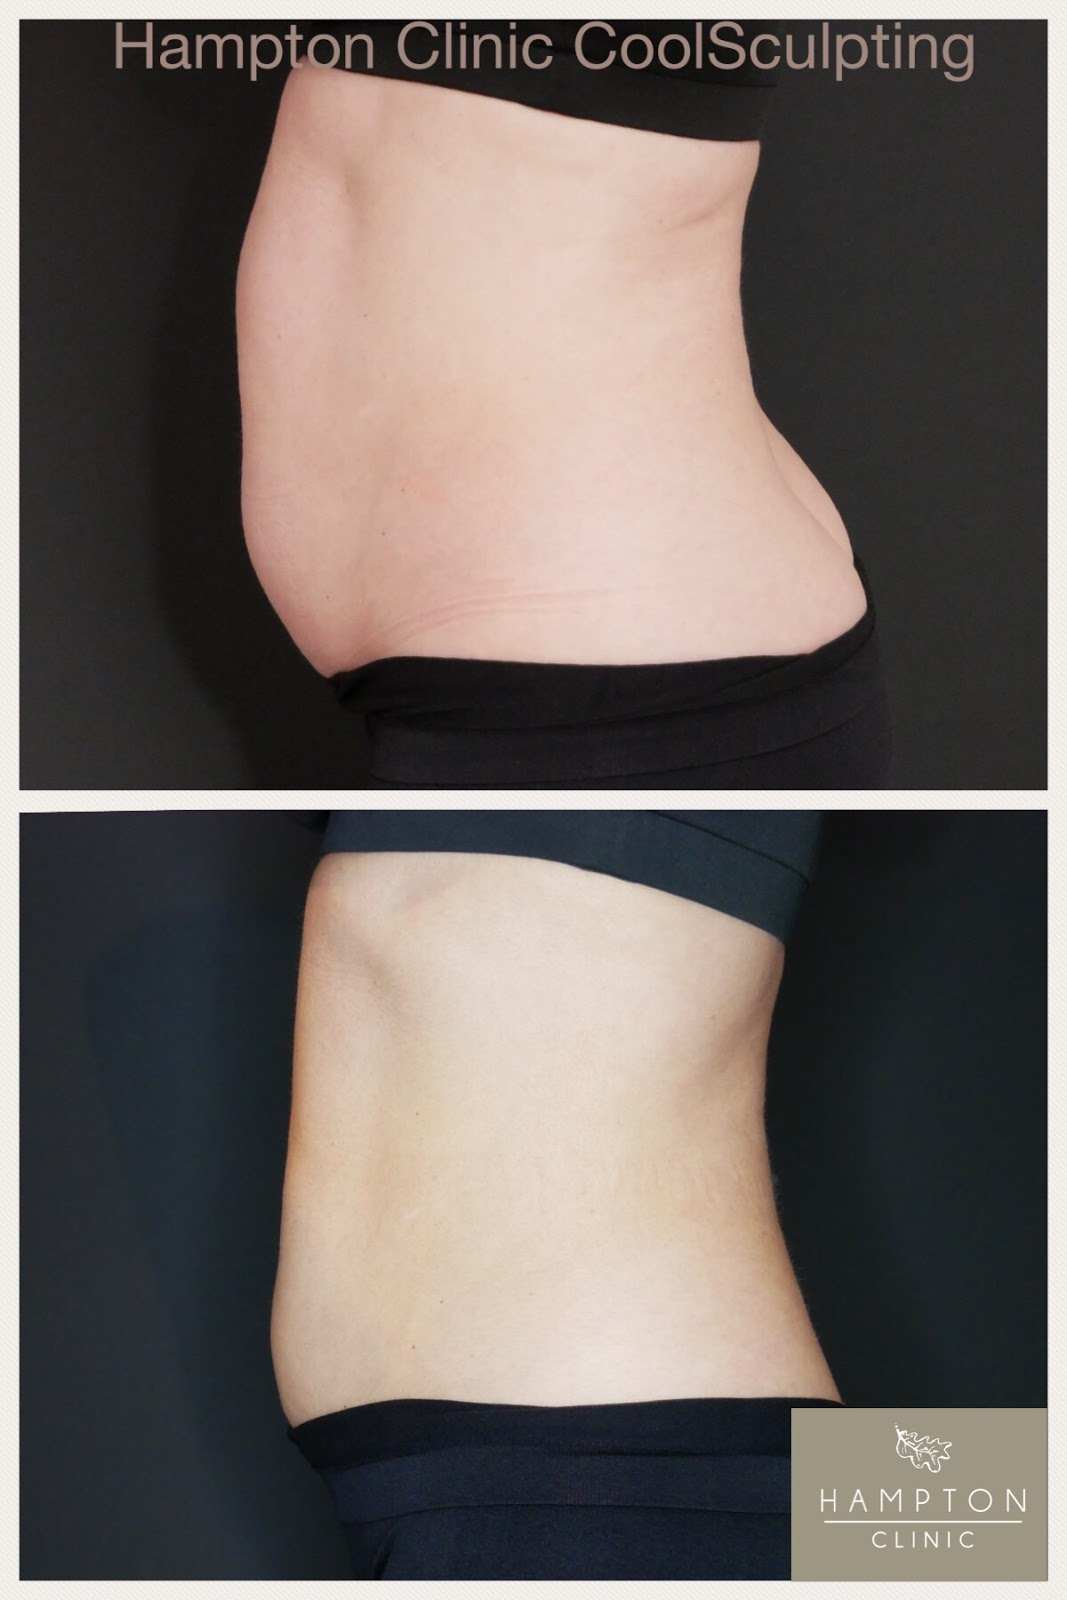 Coolsculpting before and after from Hampton Clinic \ profile view